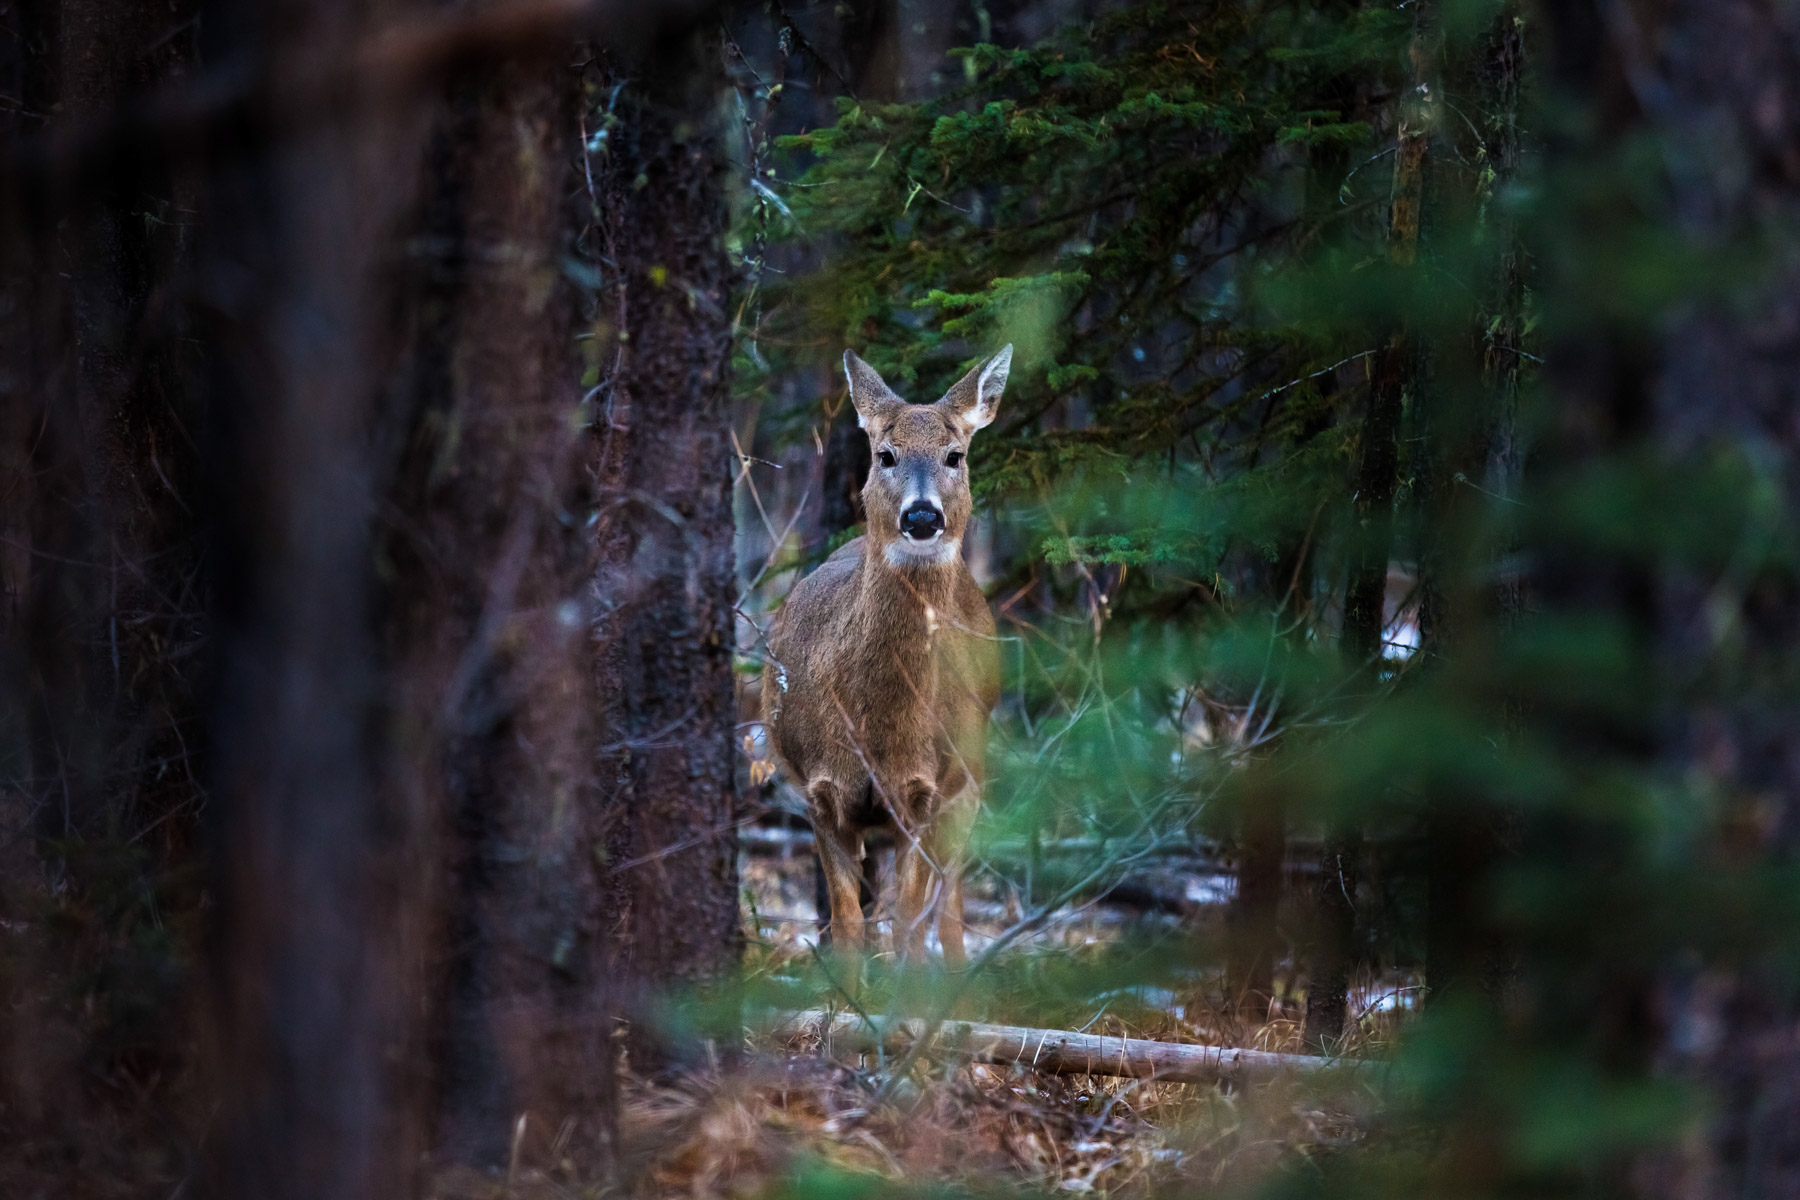 Whitetail deer in the forest - Kananaskis, Alberta  - Tracey Sawatzky, Adventure Photographer